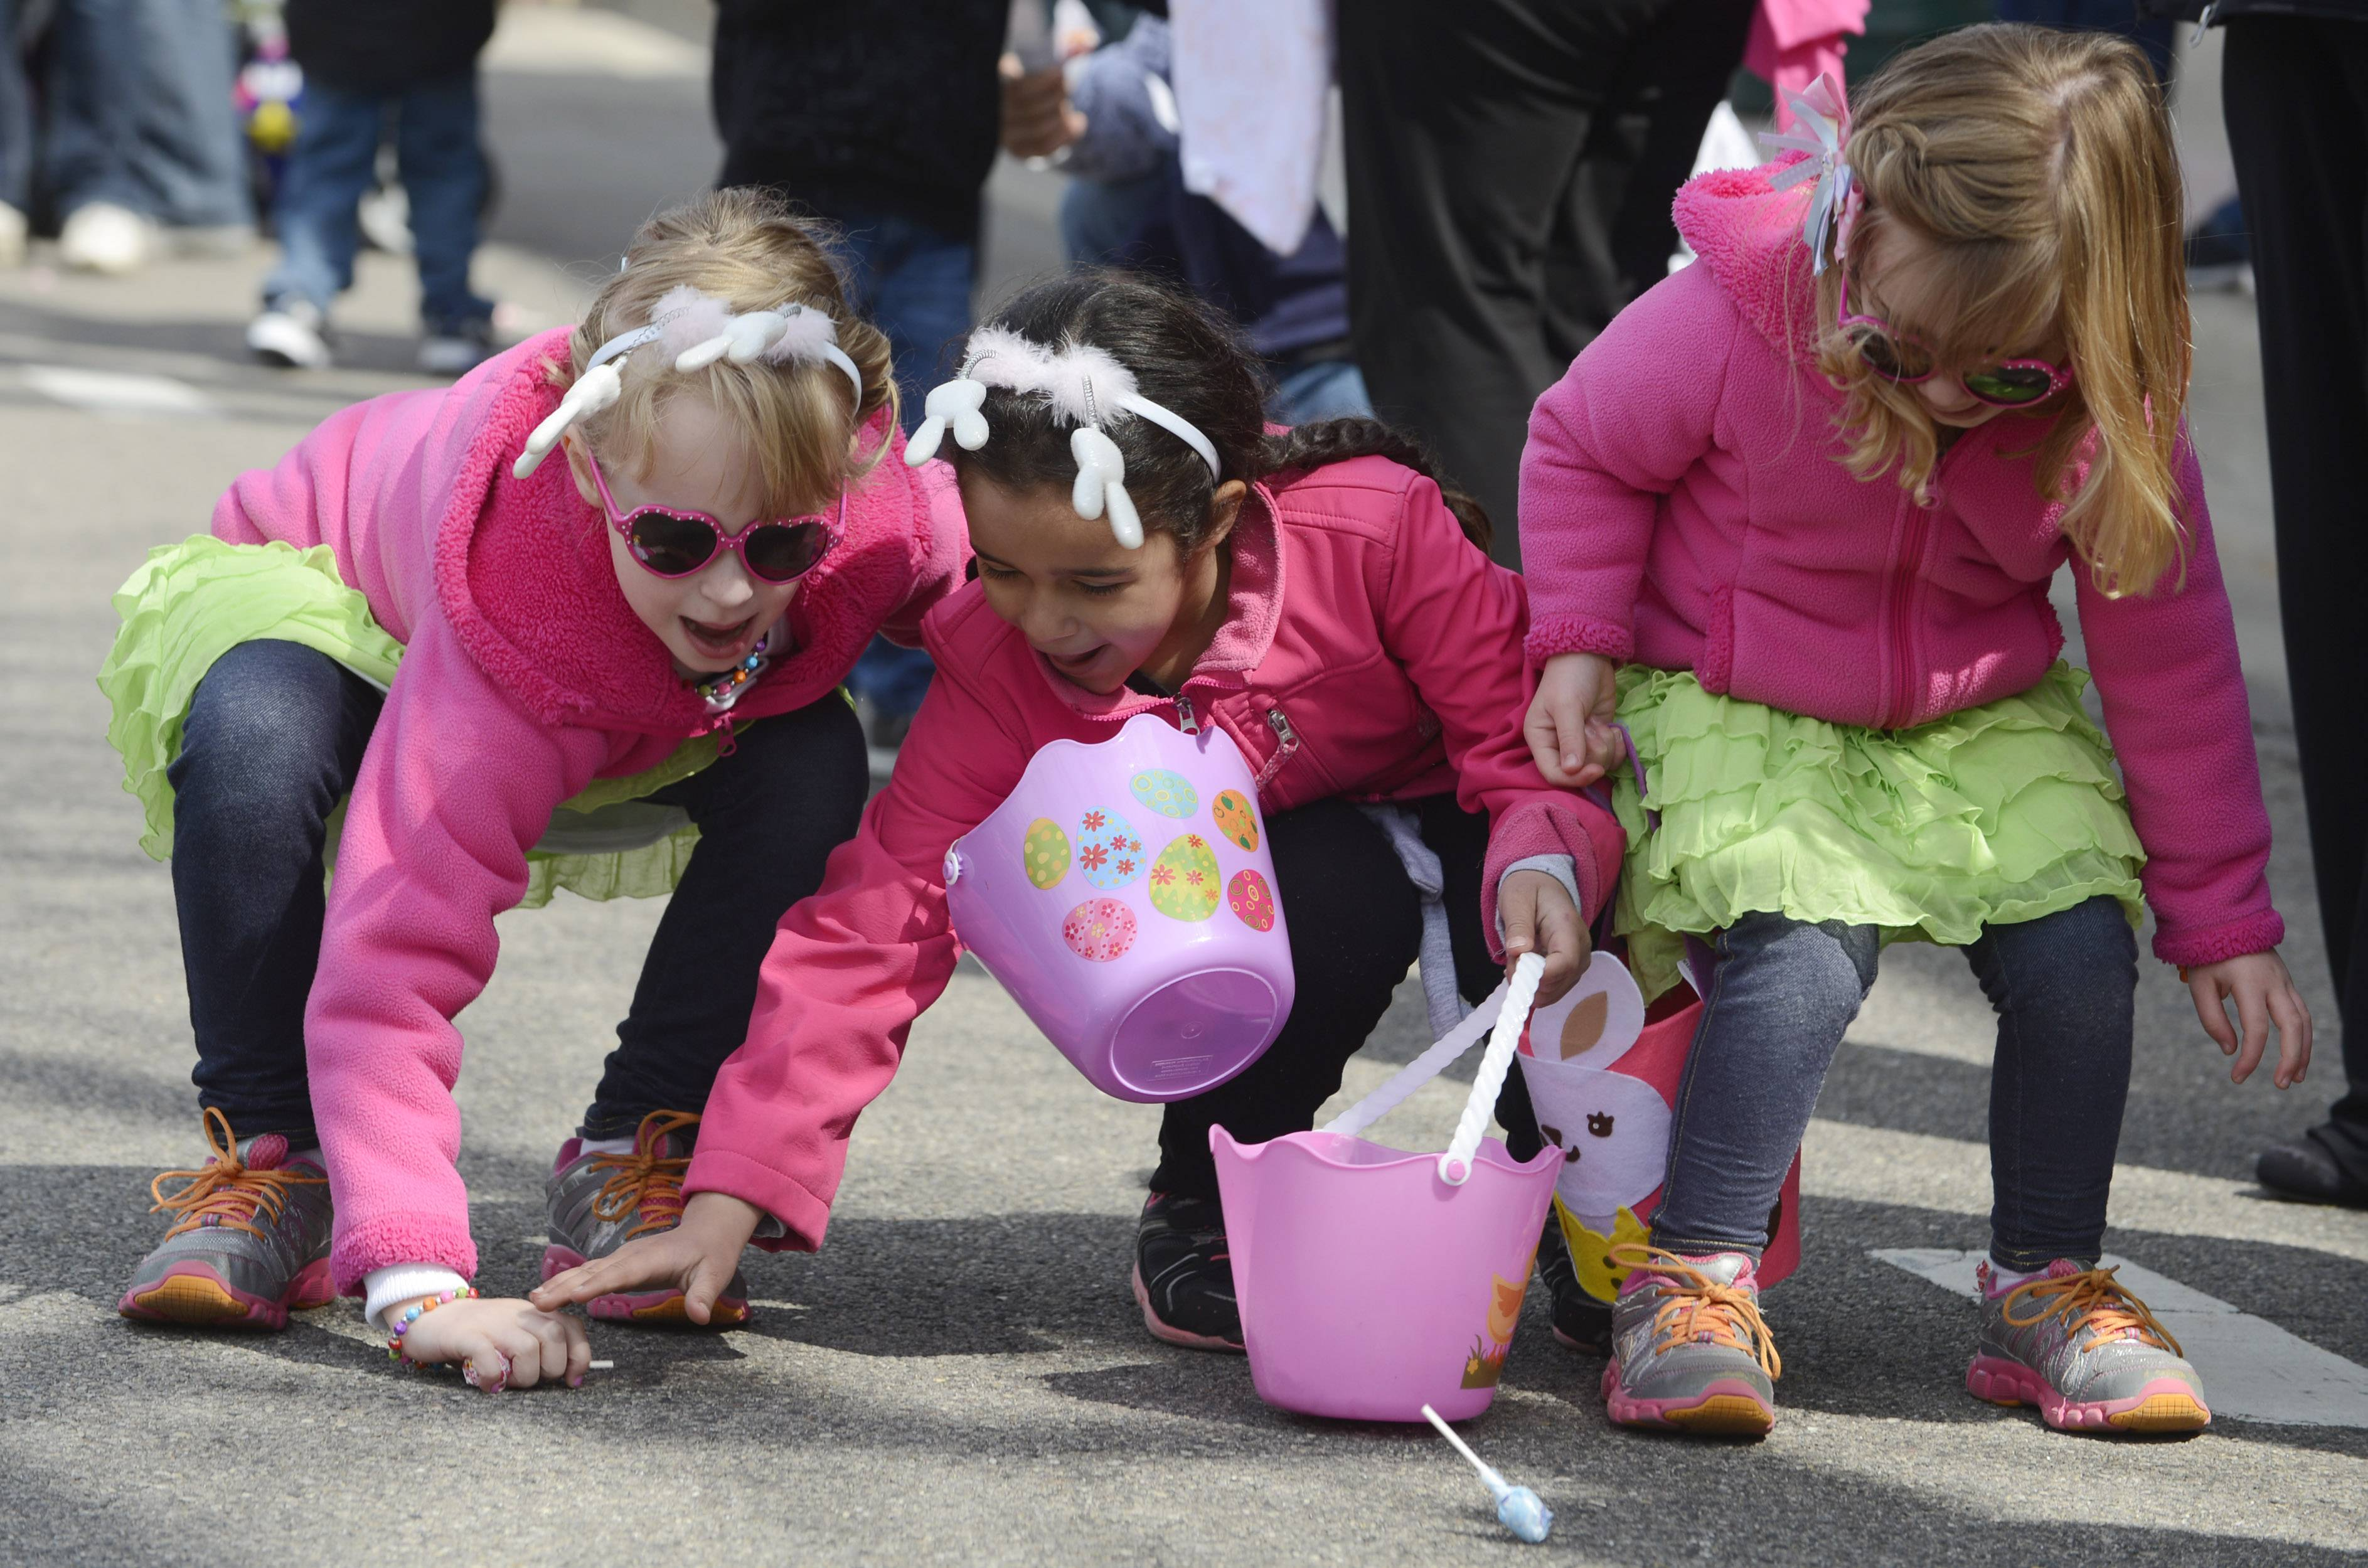 Aubrey Burgart, 6, of Antioch, left, her sister, Annabelle, 3, right, and their friend Isabella Lebron, 6, of Lake Villa gather candy during Saturday's Easter parade on Main Street in Antioch.